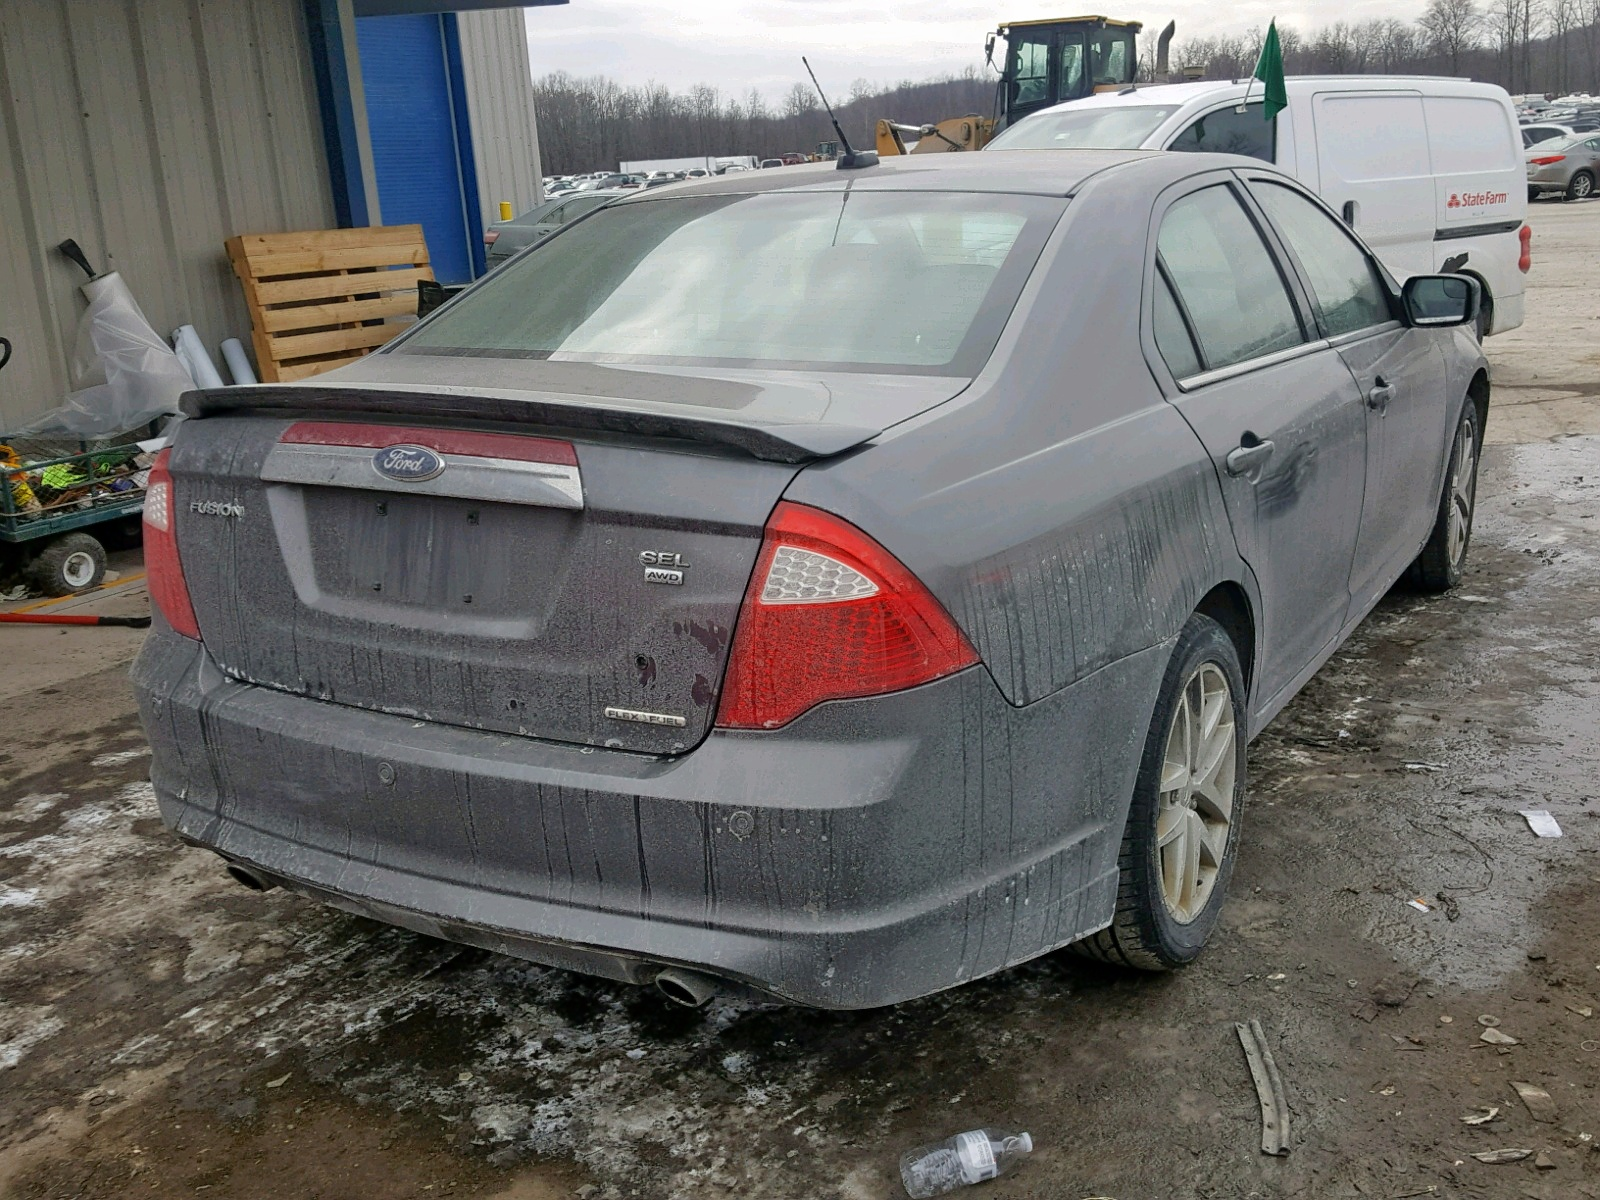 hight resolution of  3fahp0cg8cr425046 2012 ford fusion sel 3 0l rear view 3fahp0cg8cr425046